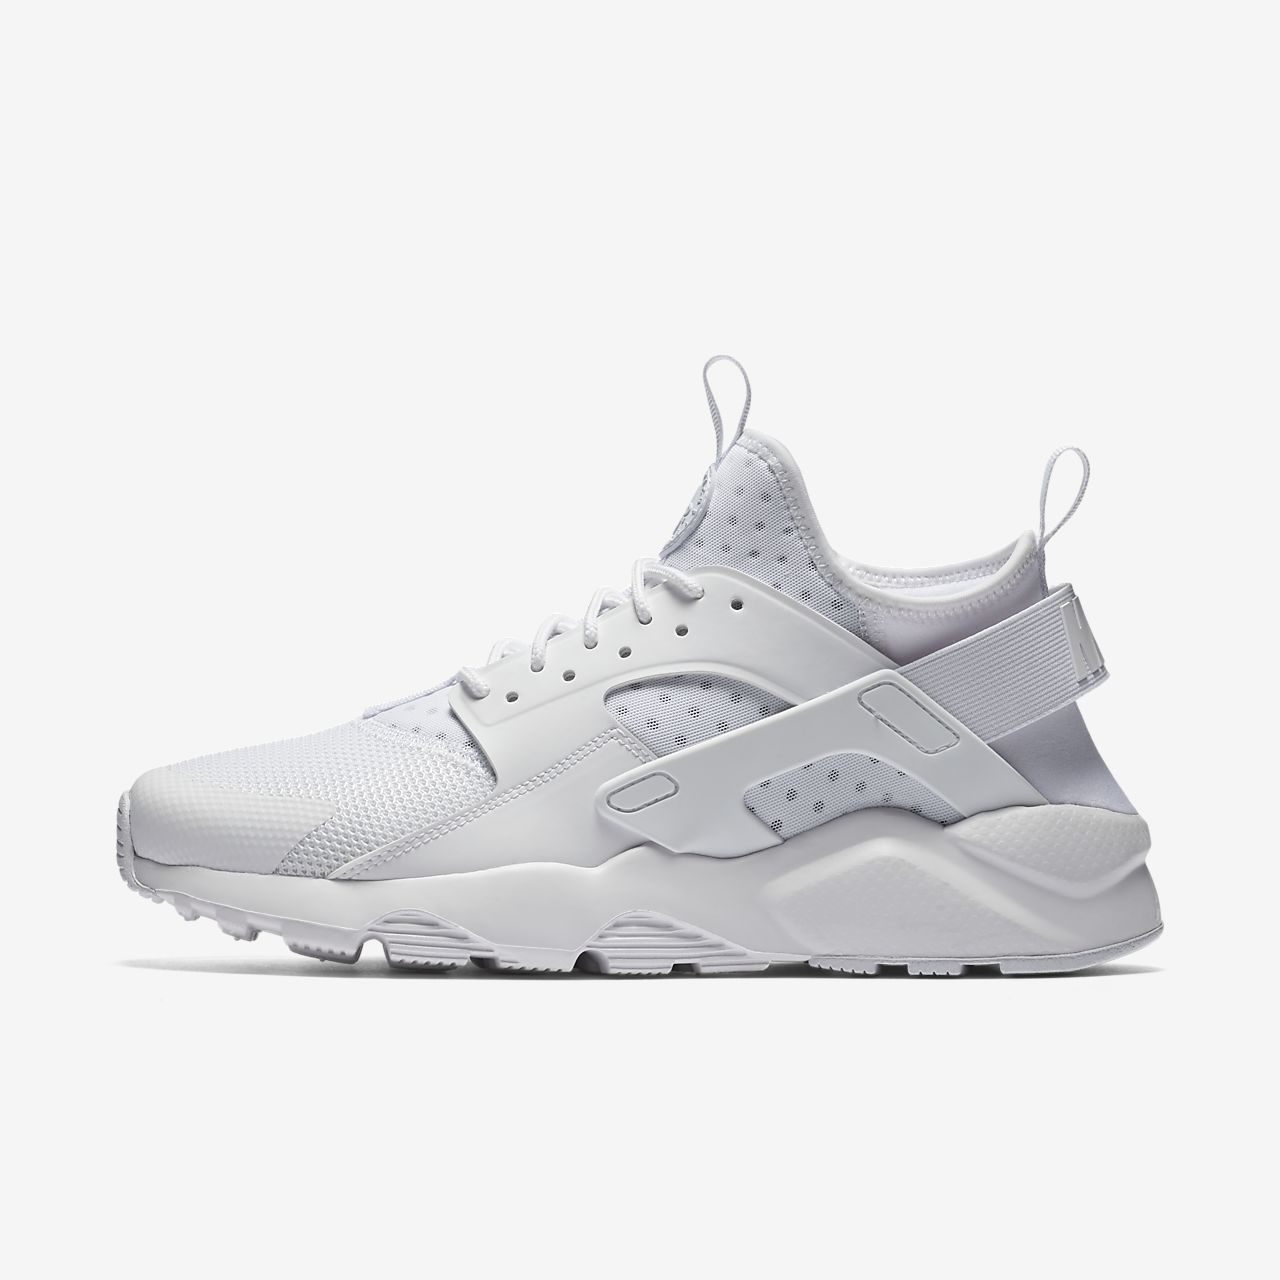 39fff5f6c618e Nike Air Huarache Ultra Men s Shoe. Nike.com ZA